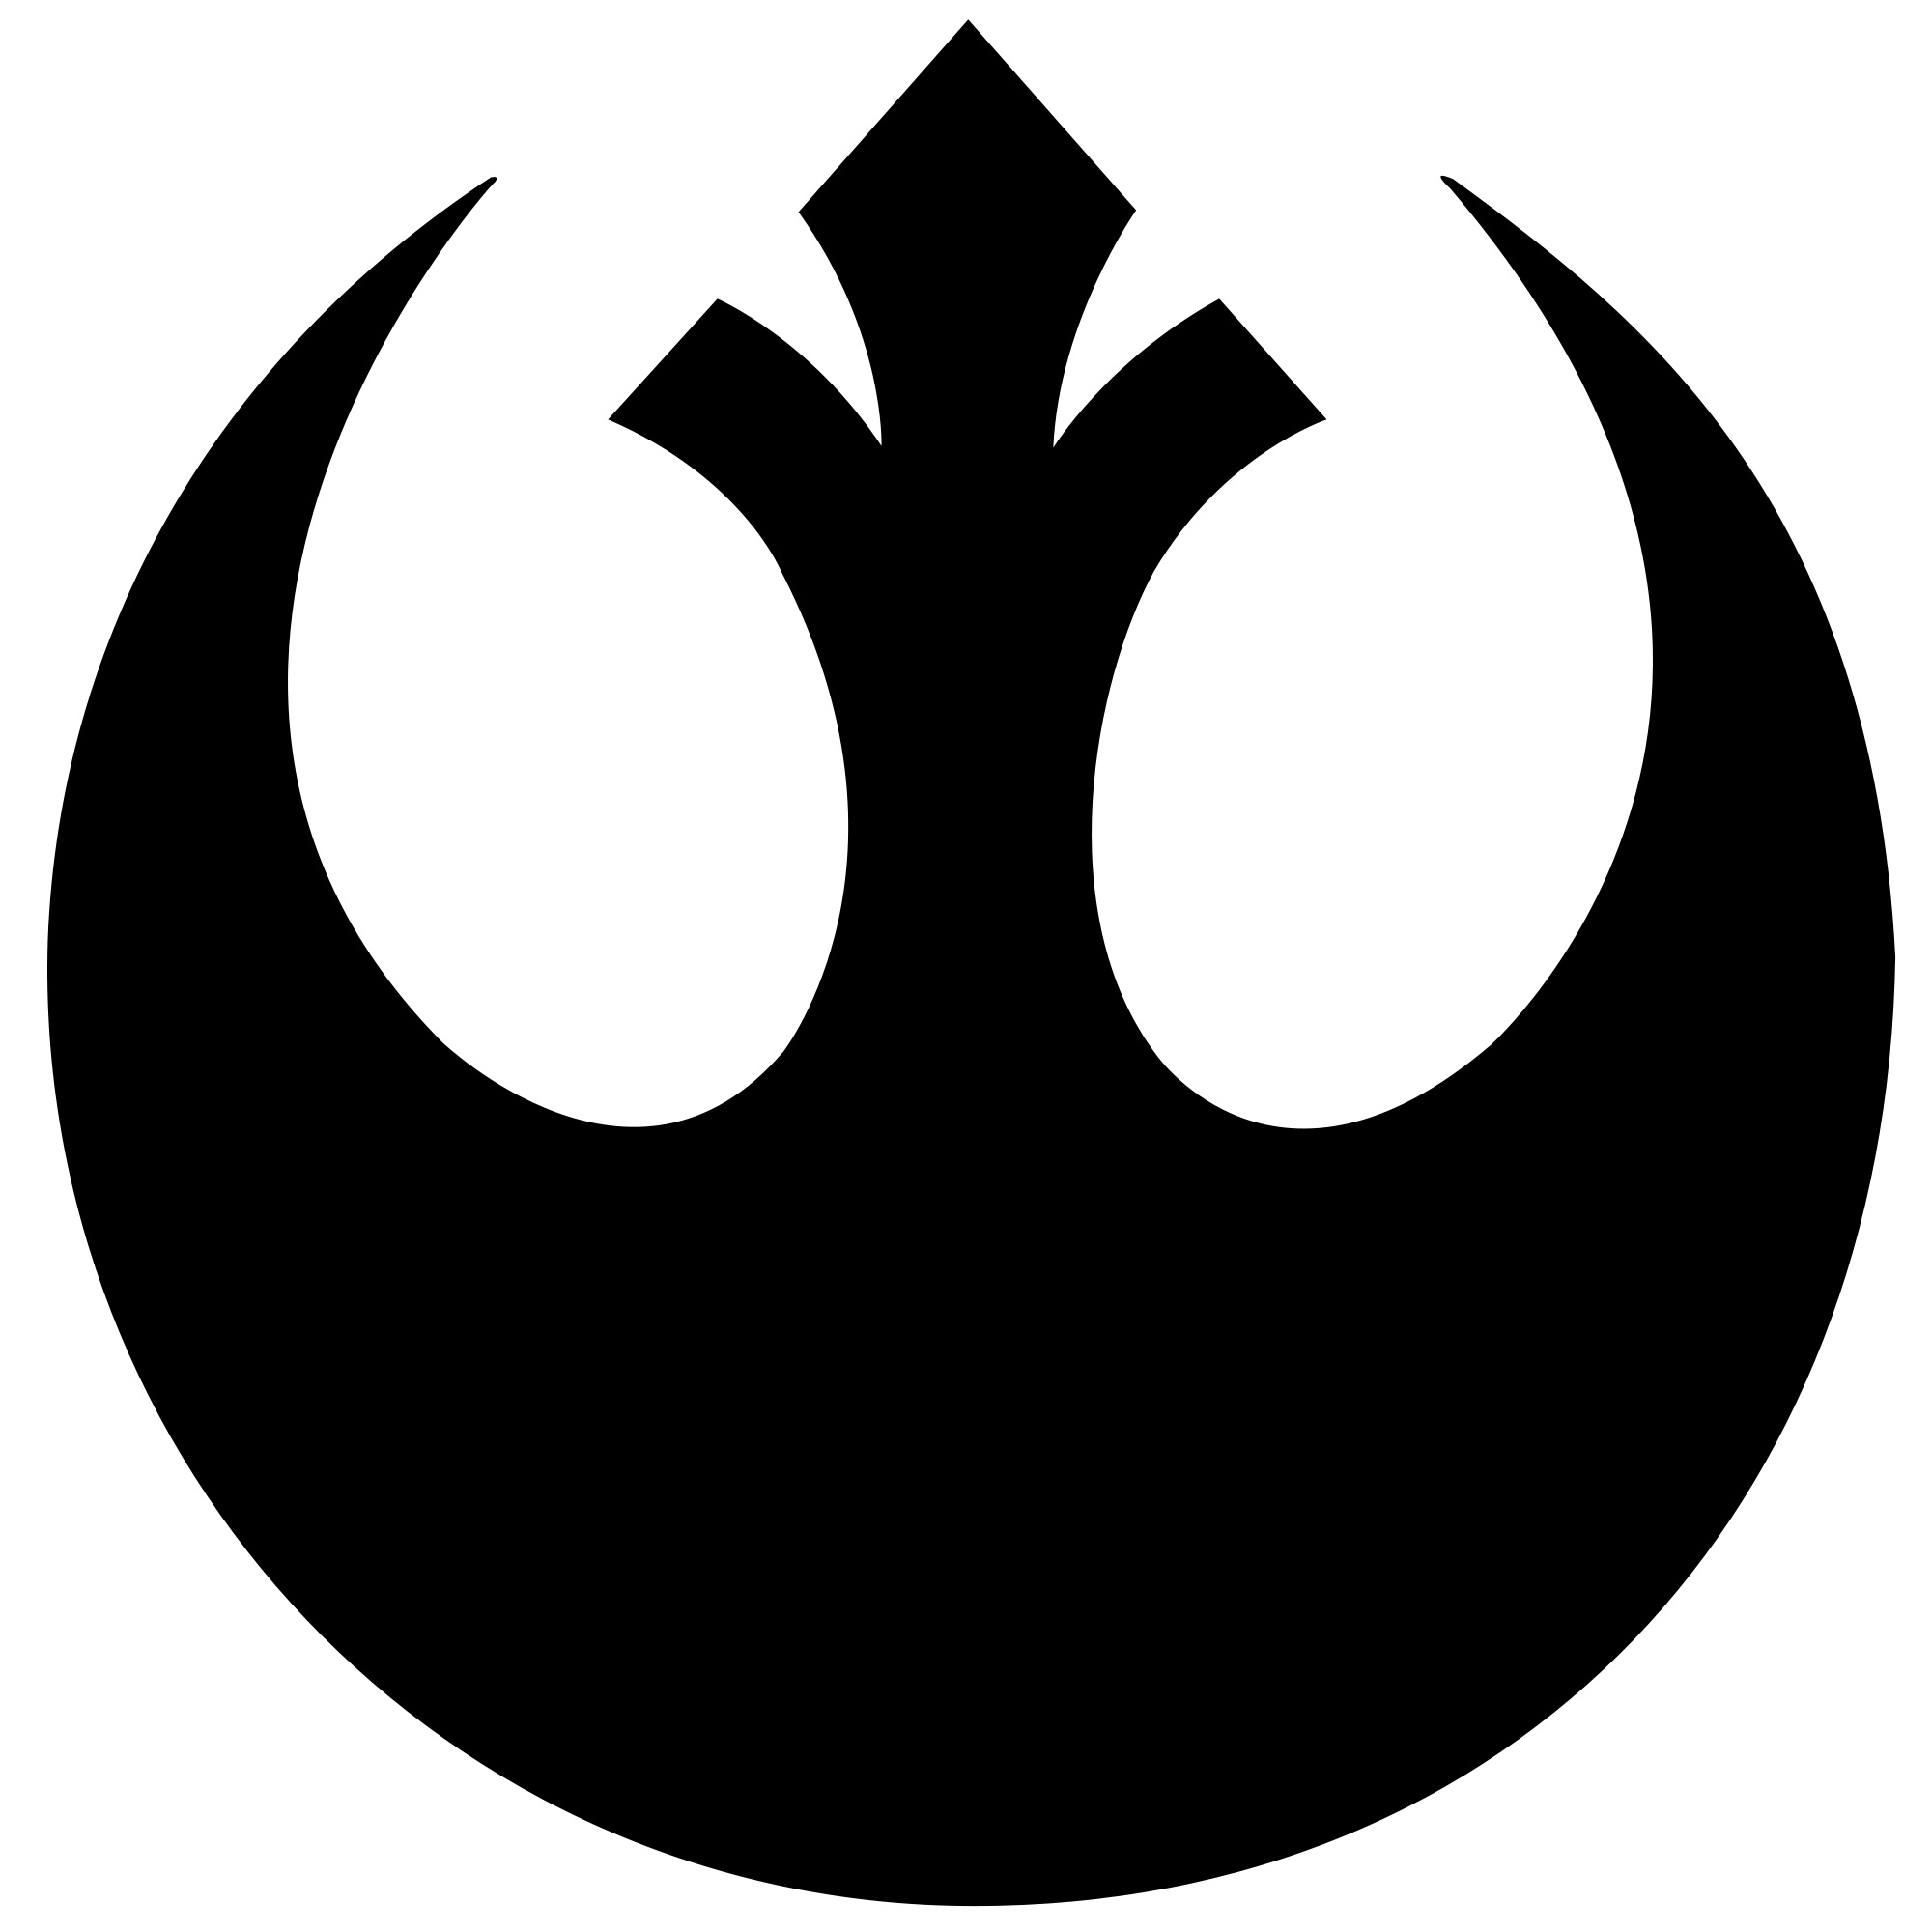 5 Symbols In The Star Wars Universe Starwars